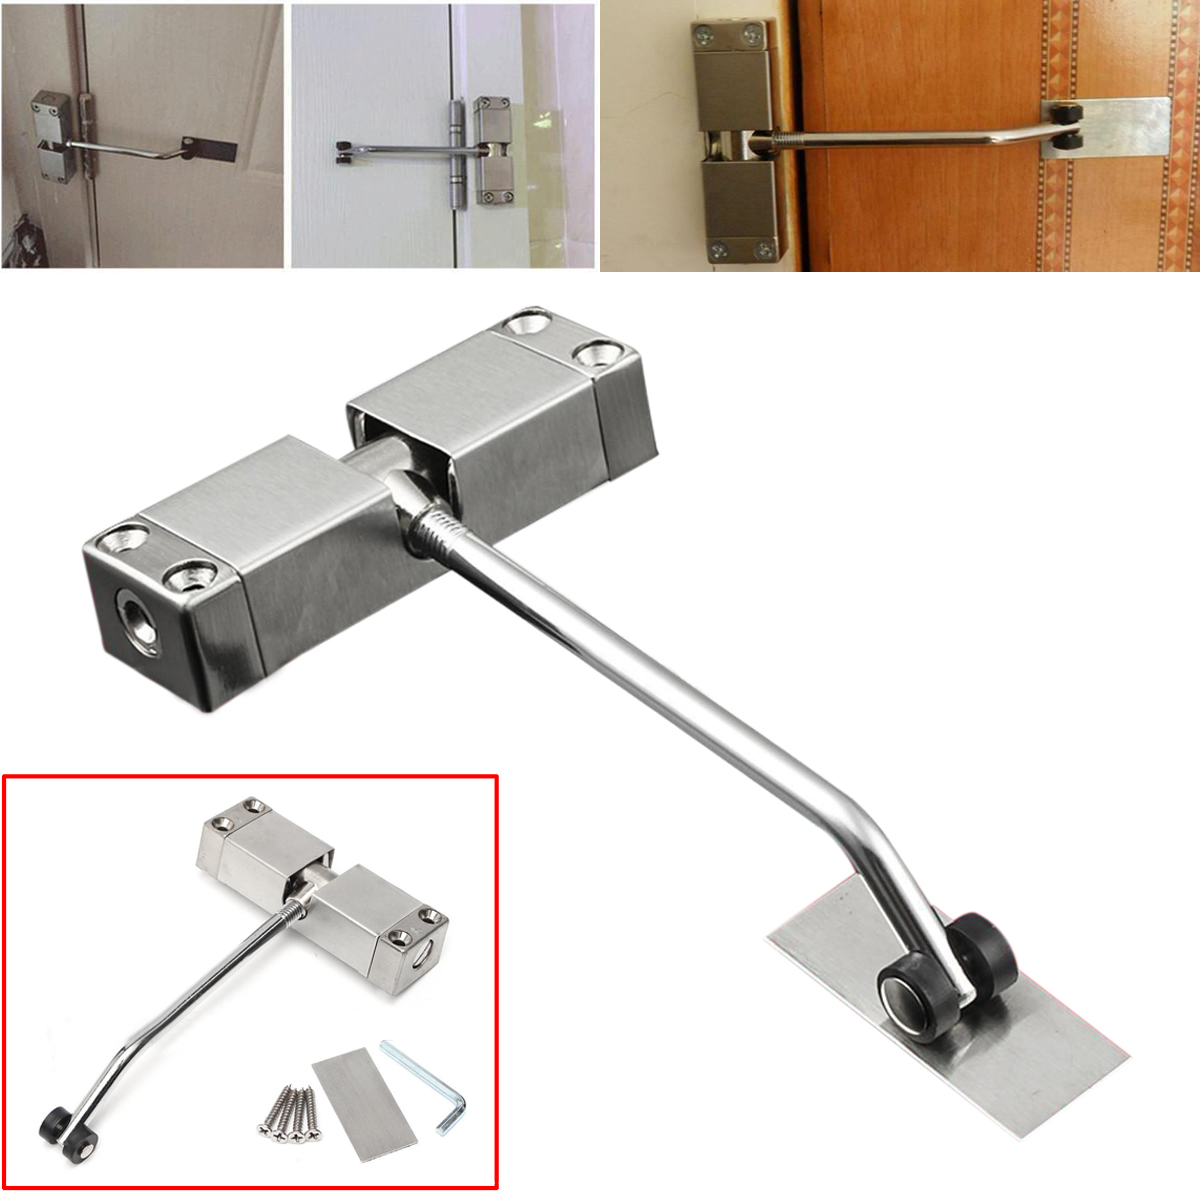 NEW 1pc Automatic Mounted Spring Door Closer Stainless Steel Adjustable Surface Door Closer 160x96x20mm 1pc automatic mounted spring door closer stainless steel adjustable surface door closer 160x96x20mm page 8